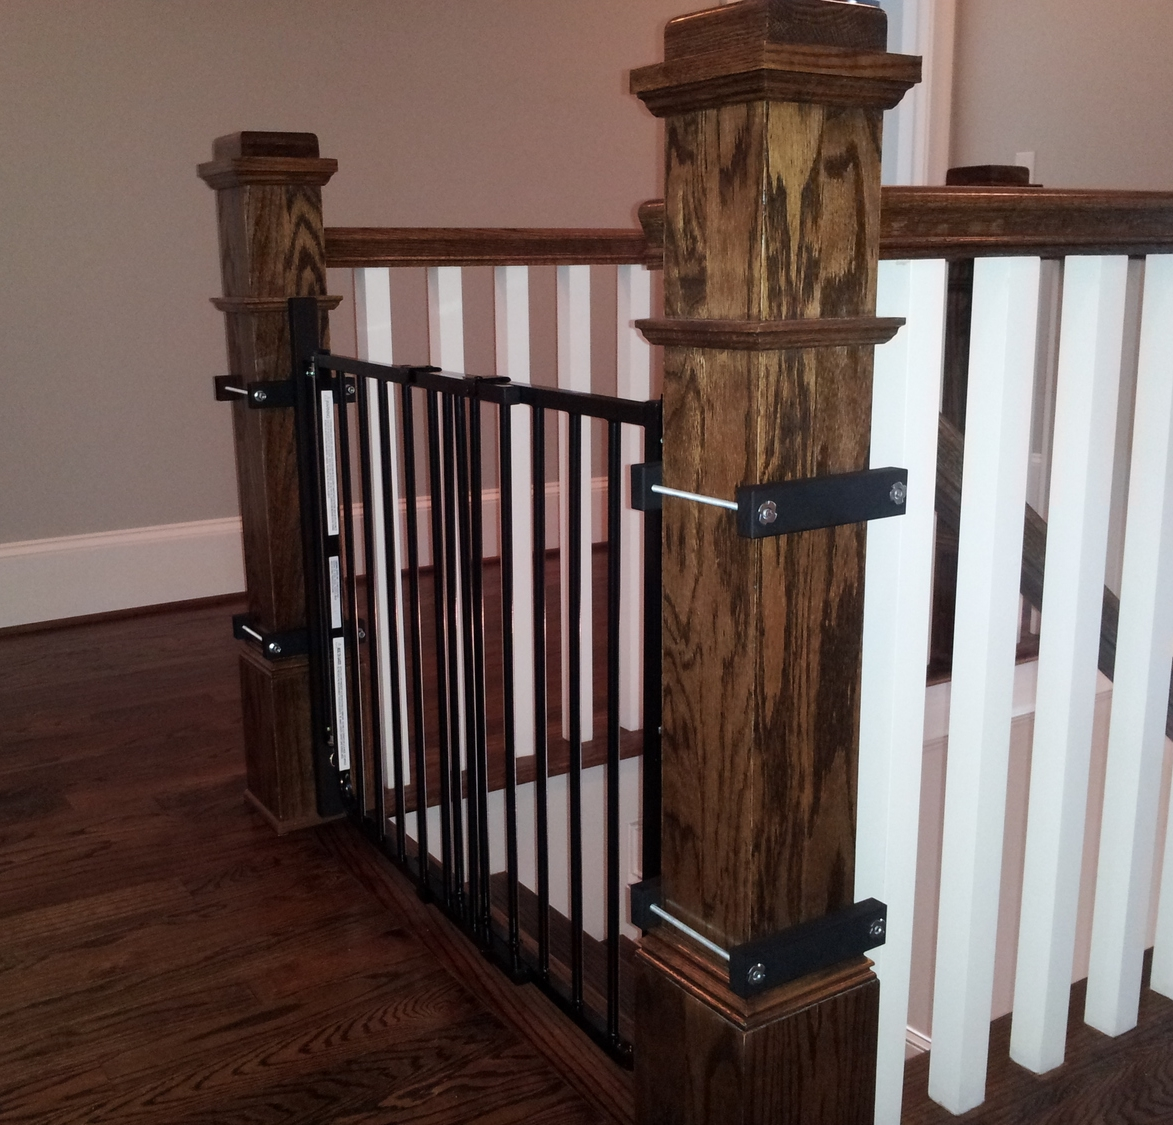 Gates can be securely installed without drilling into, or damaging banister posts